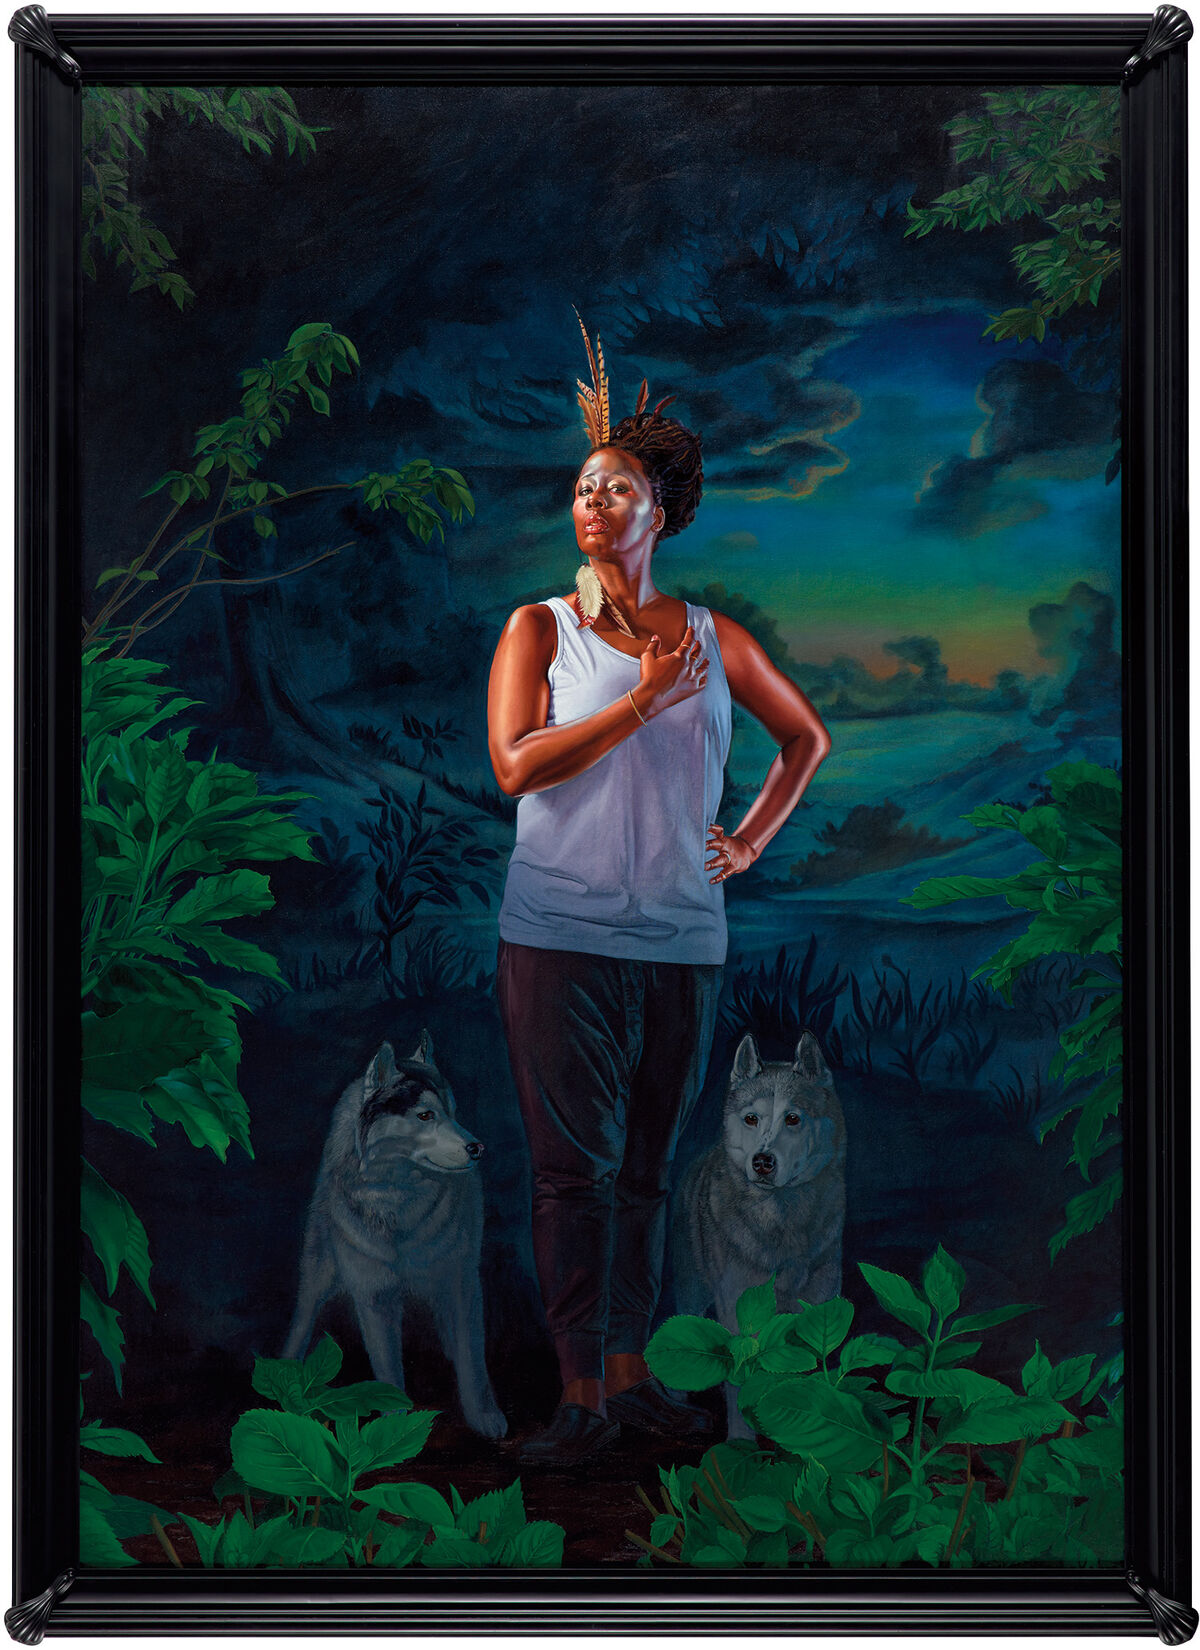 Kehinde Wiley, Portrait of Mickalene Thomas, the Coyote, 2017.  © Kehinde Wiley. Courtesy of the artist and Phillips.